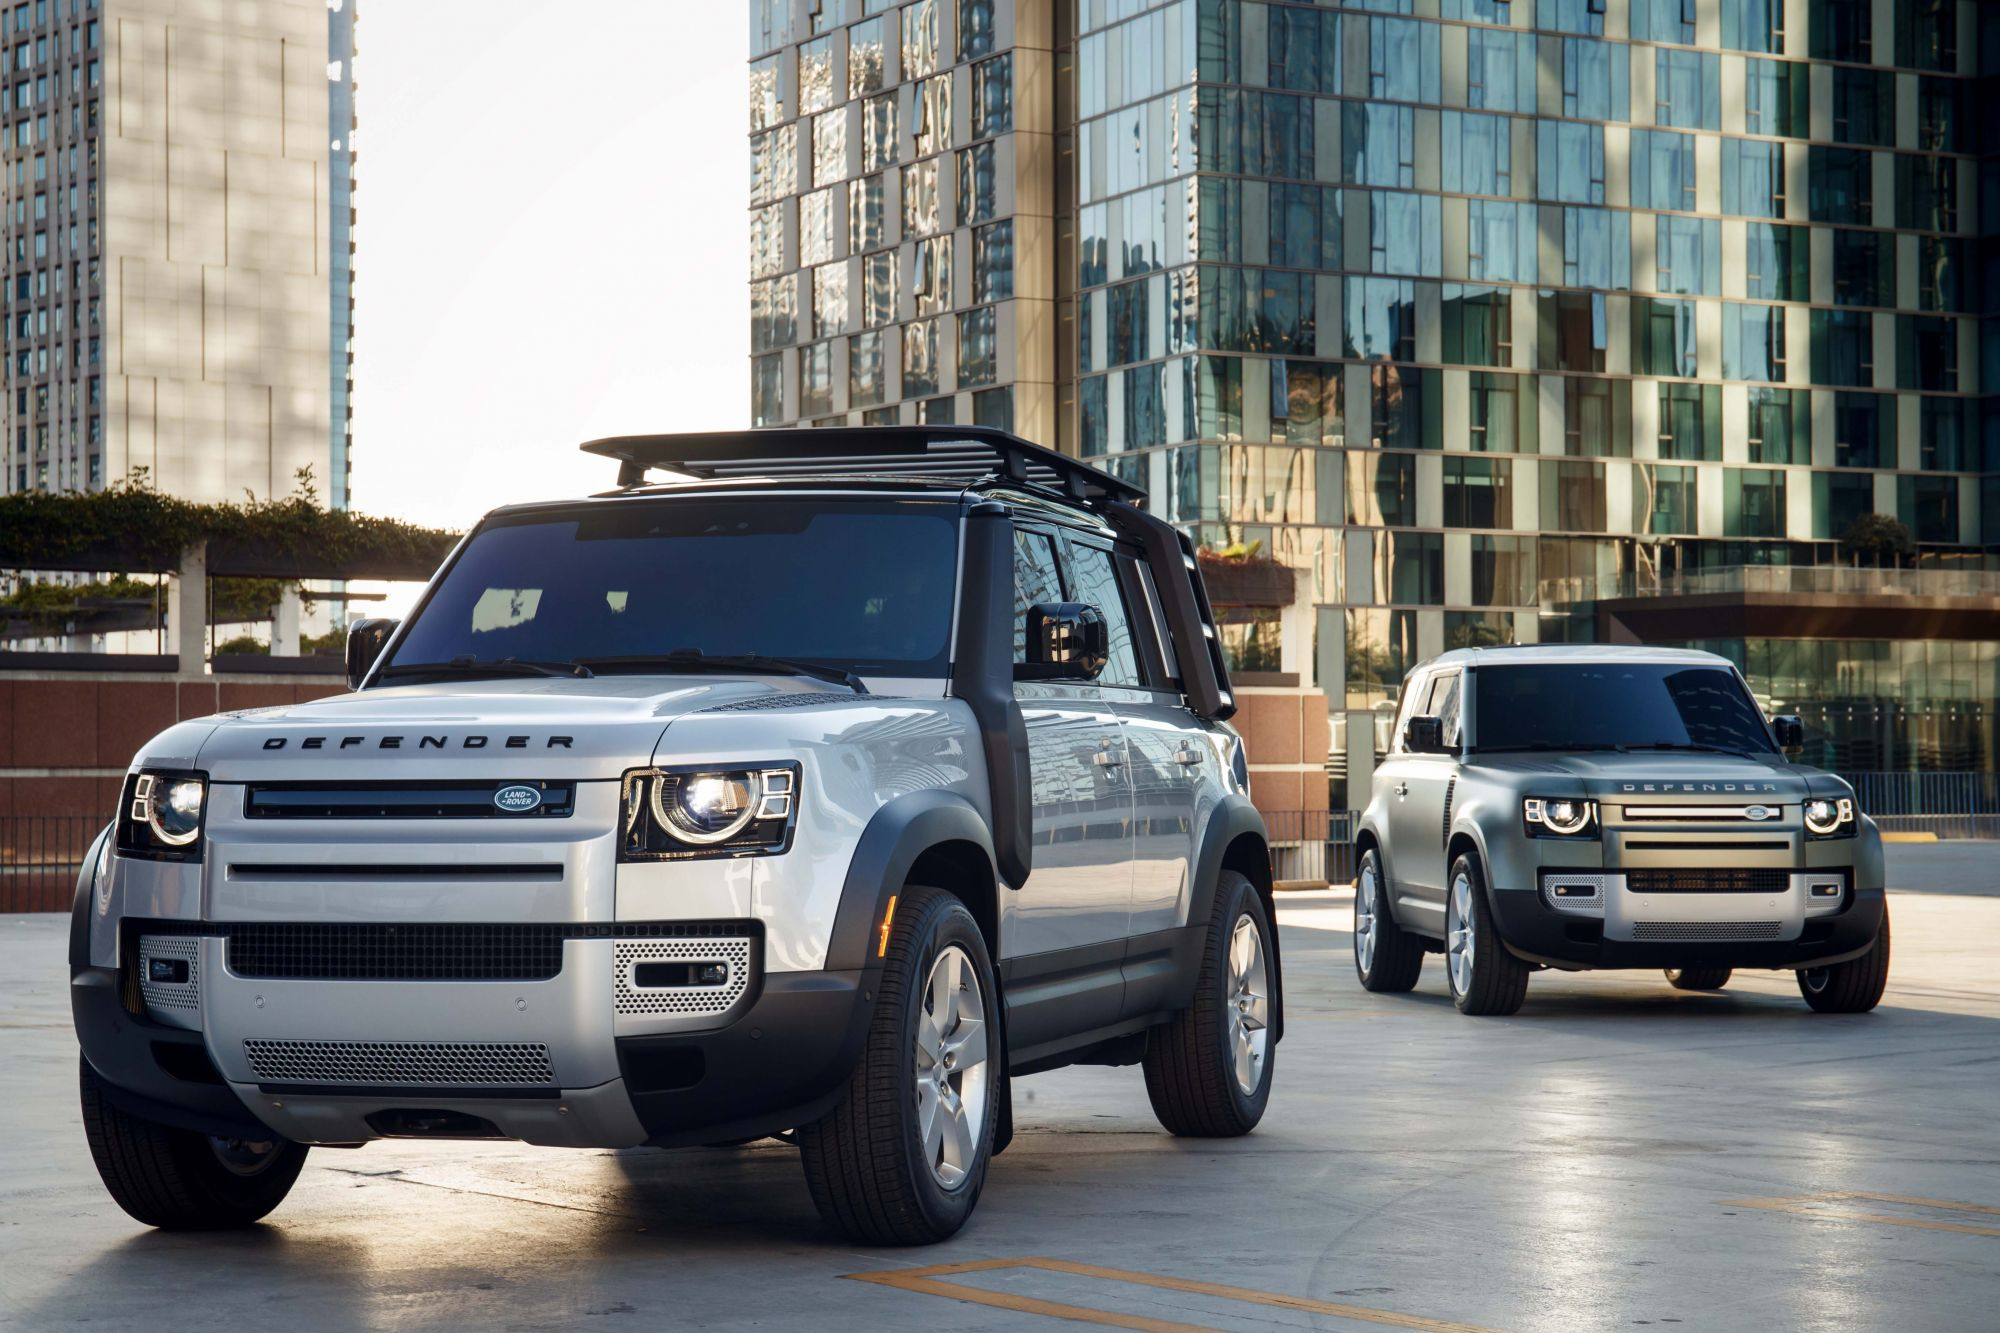 Meet the New Land Rover Defender, an Icon in the Motoring World